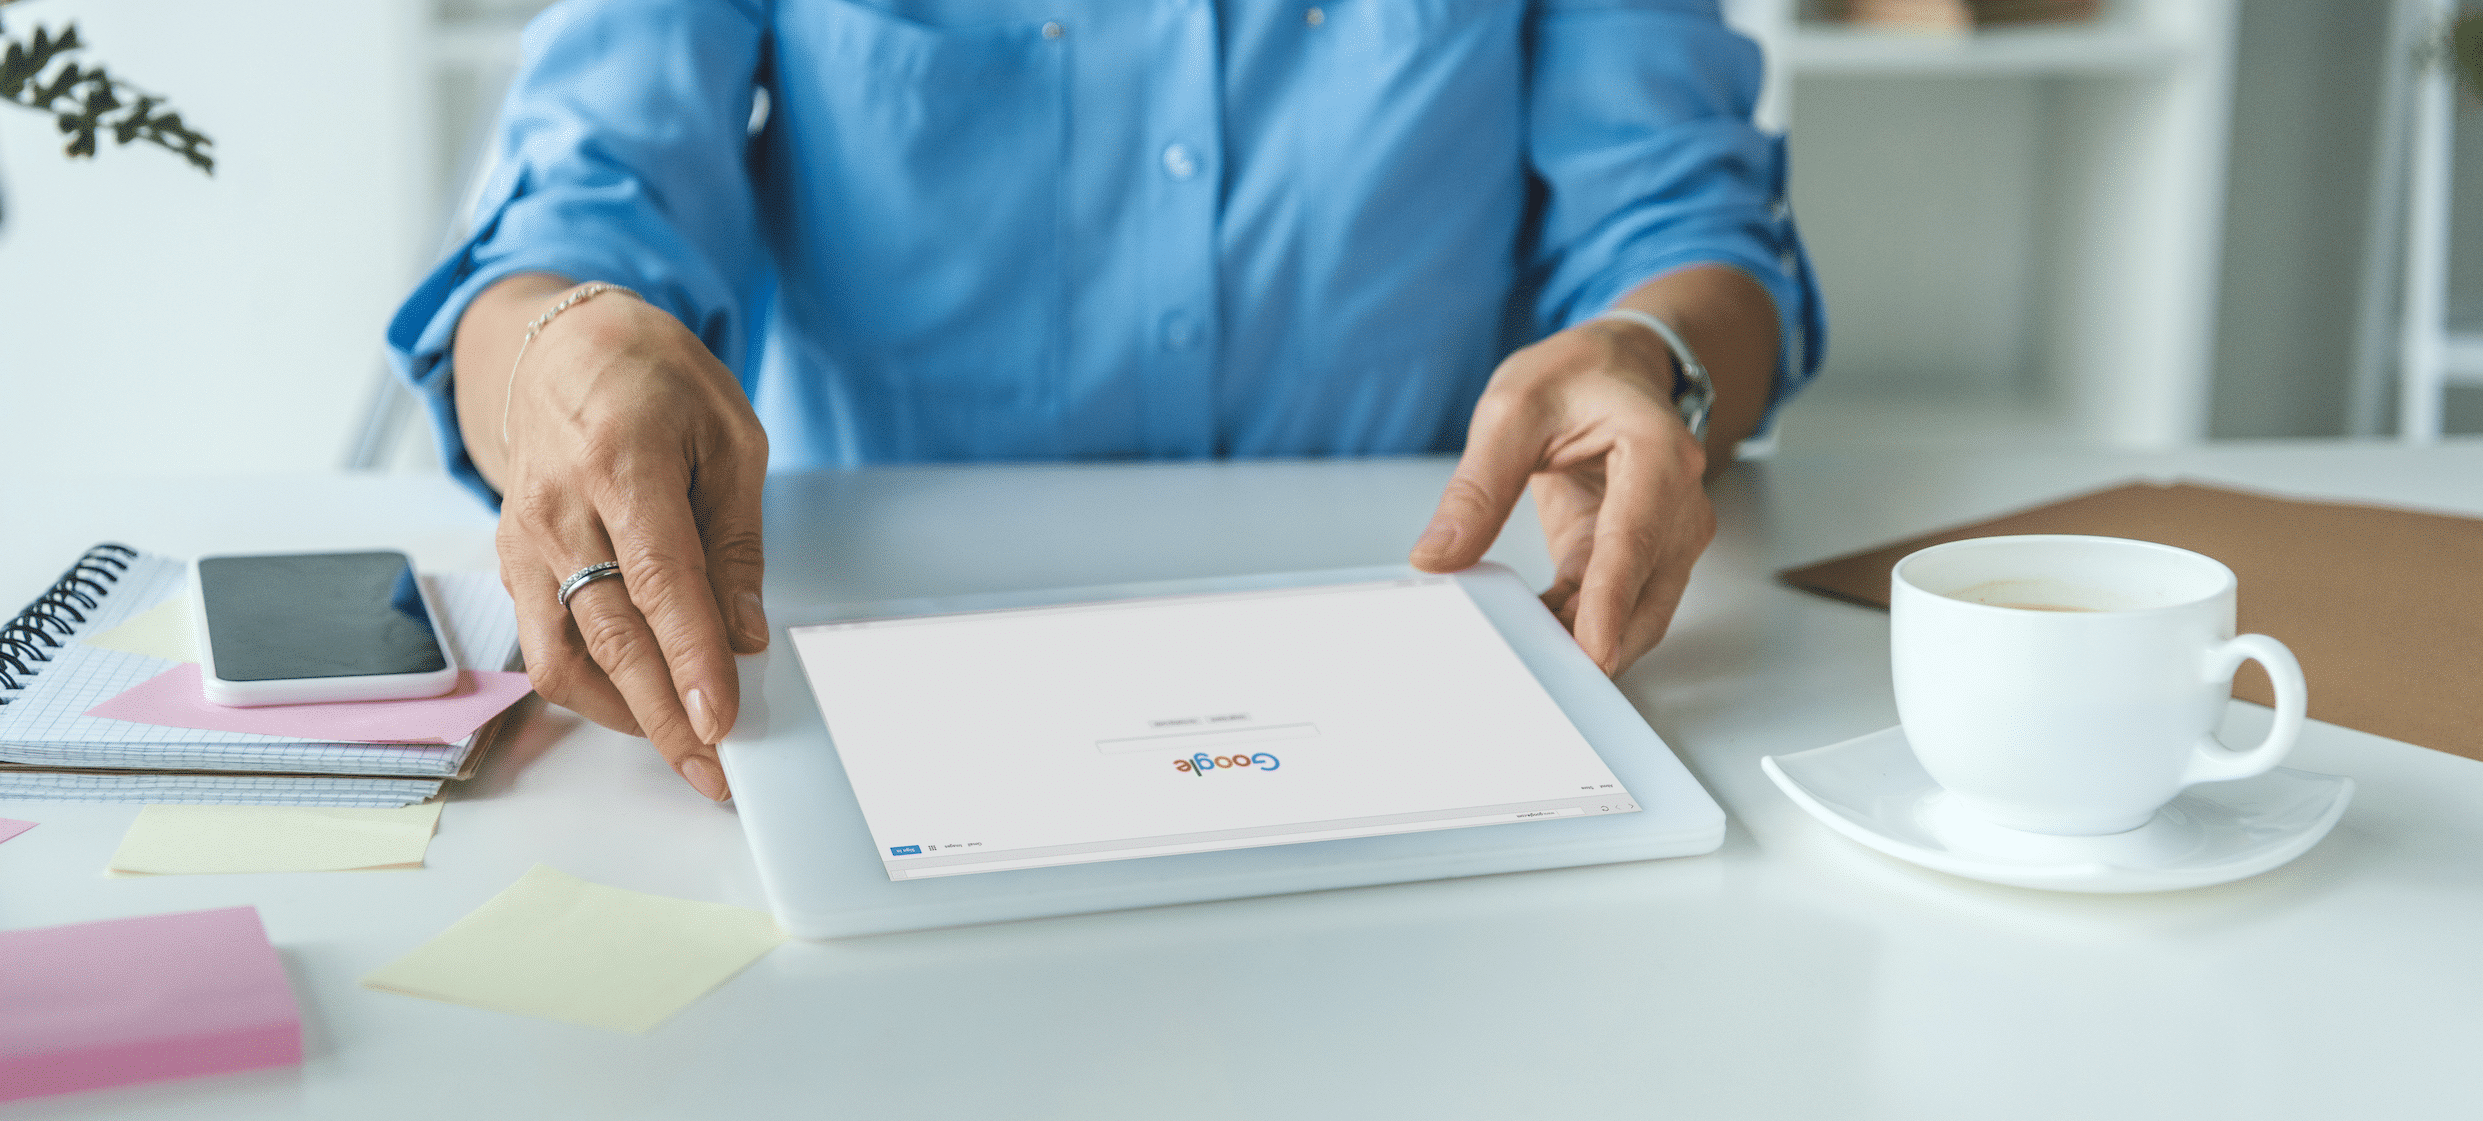 What's a Google Ad and Why is it Valuable?